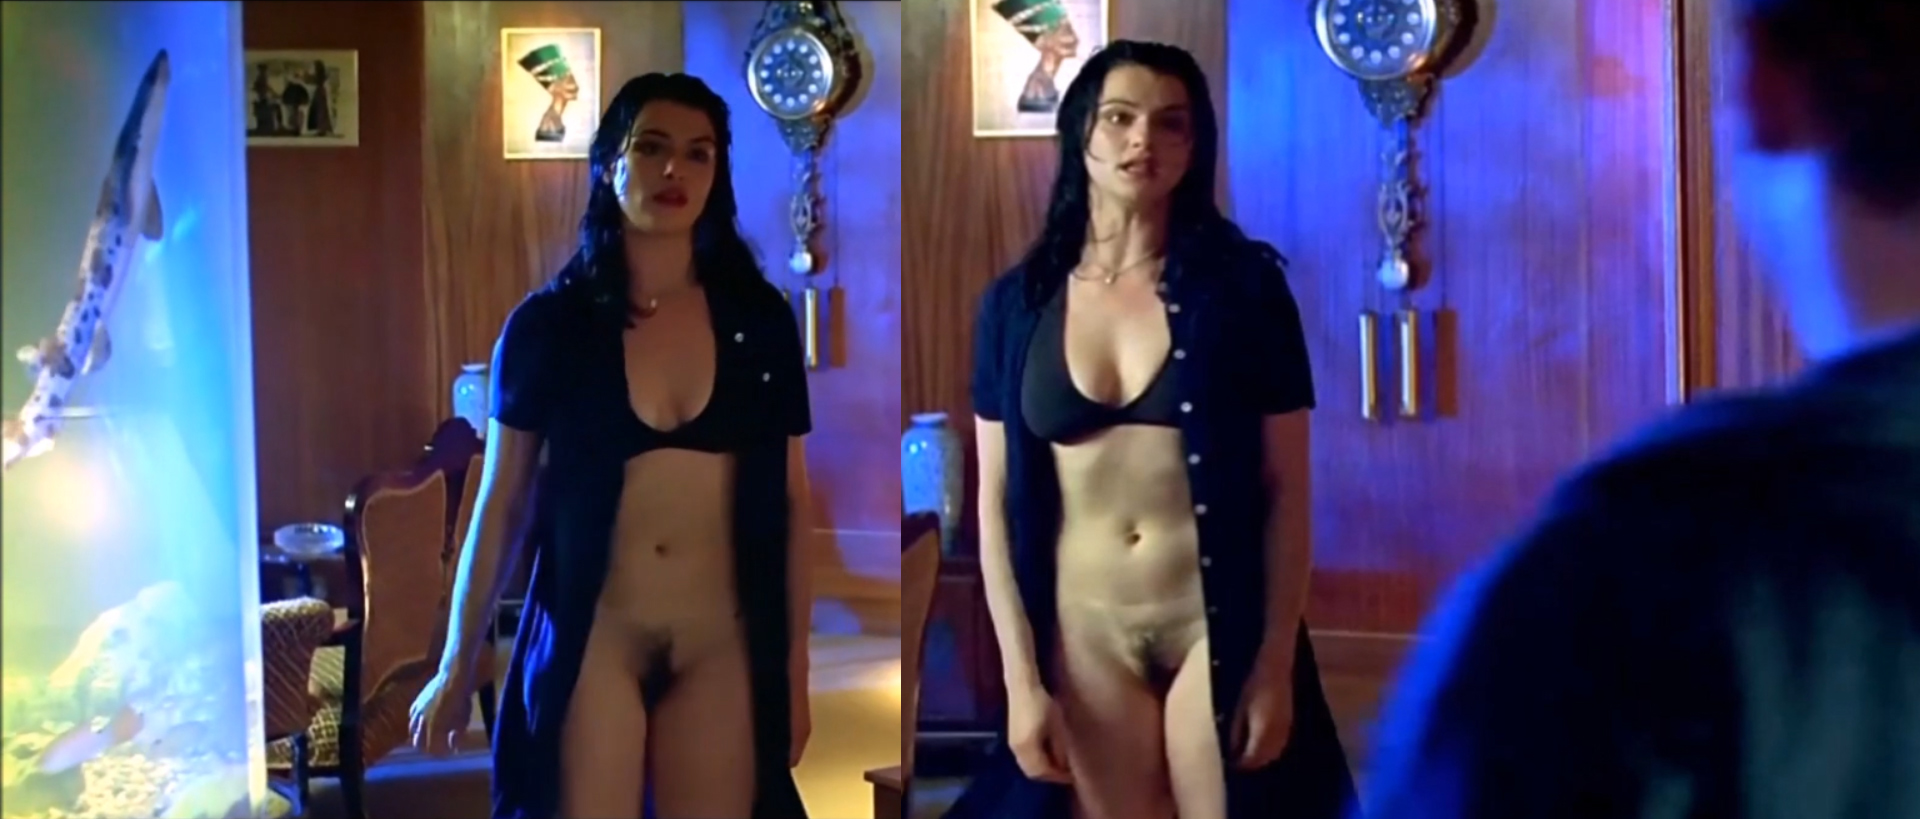 Rachel weisz xxx good whores